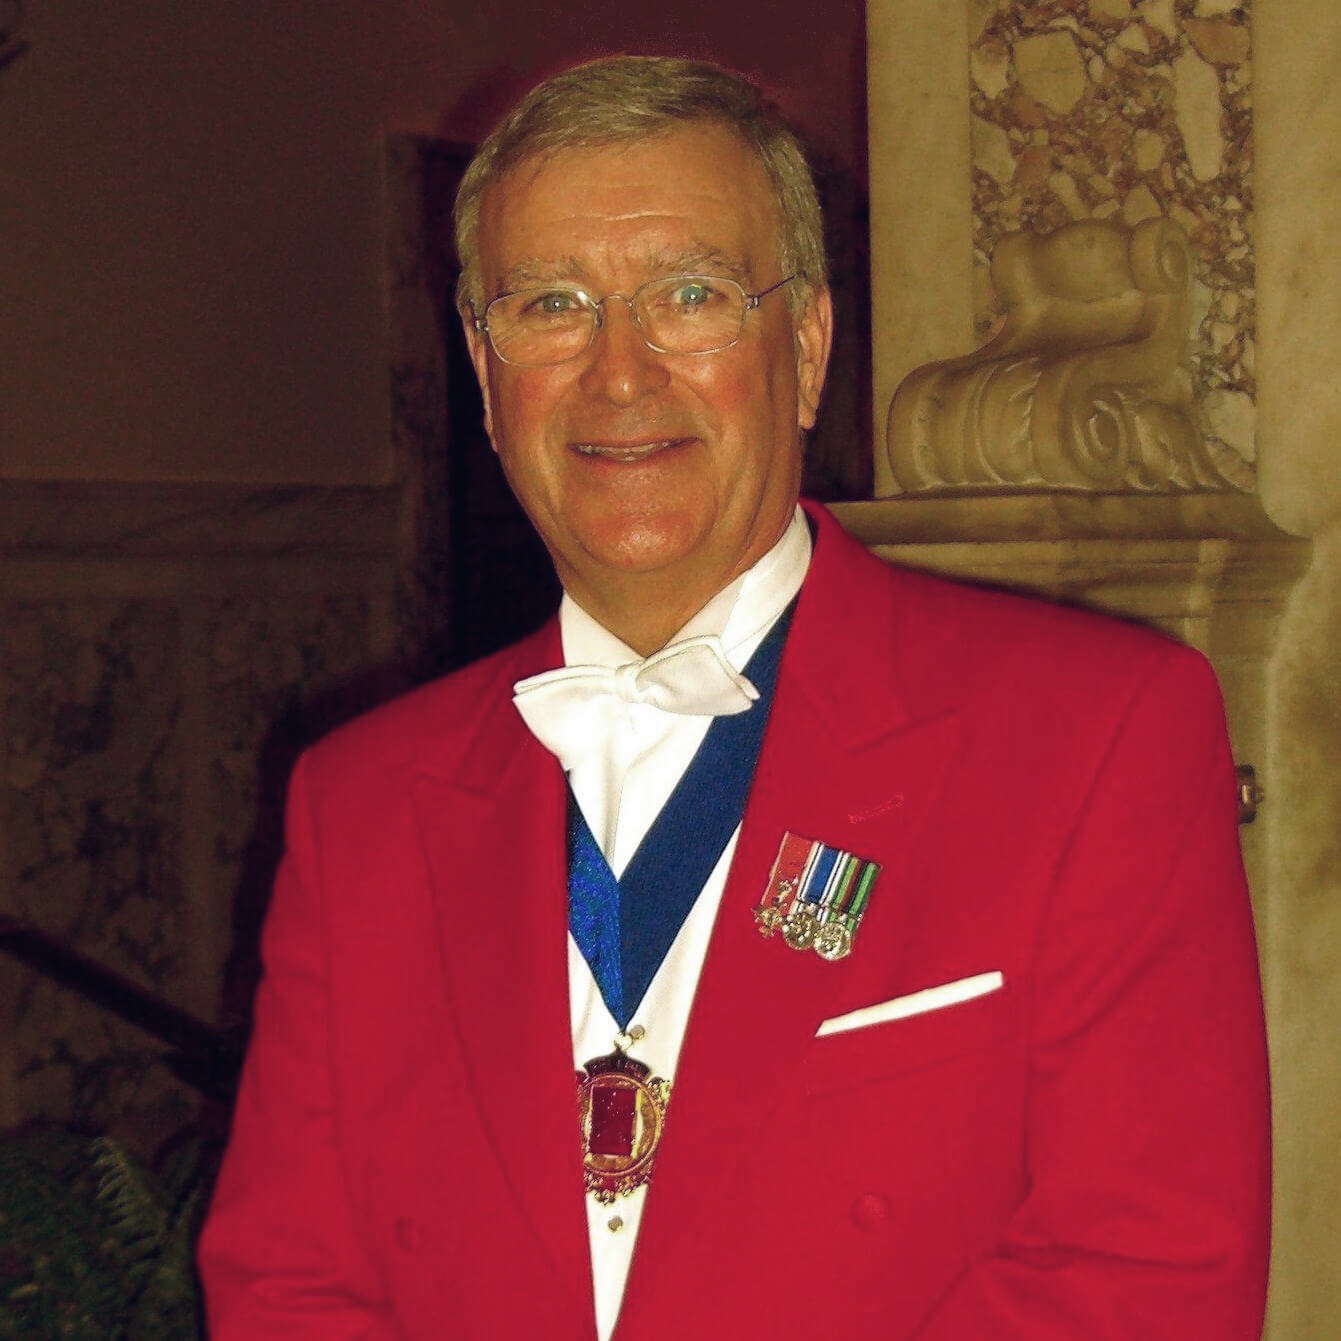 Professional Toastmaster and Master of Ceremonies Northern Ireland - Jack Adair